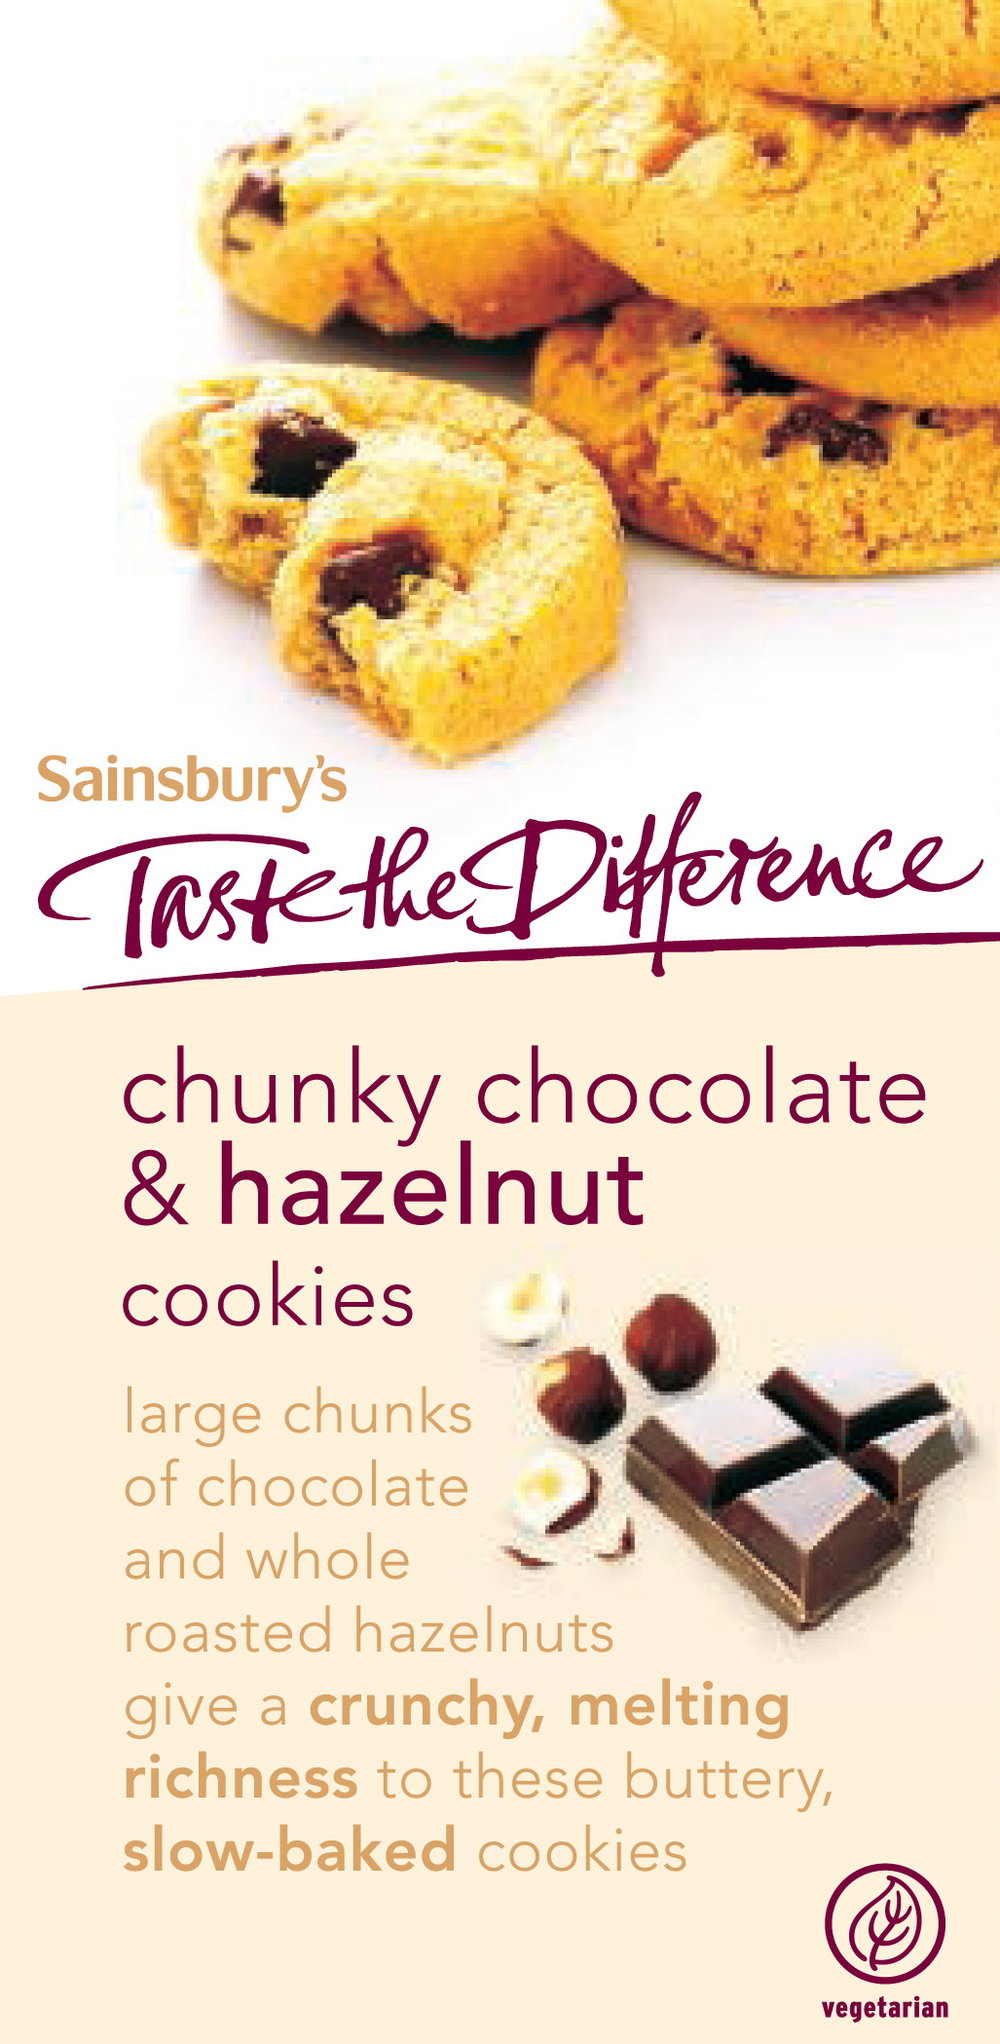 Packaging copy for Sainsbury's